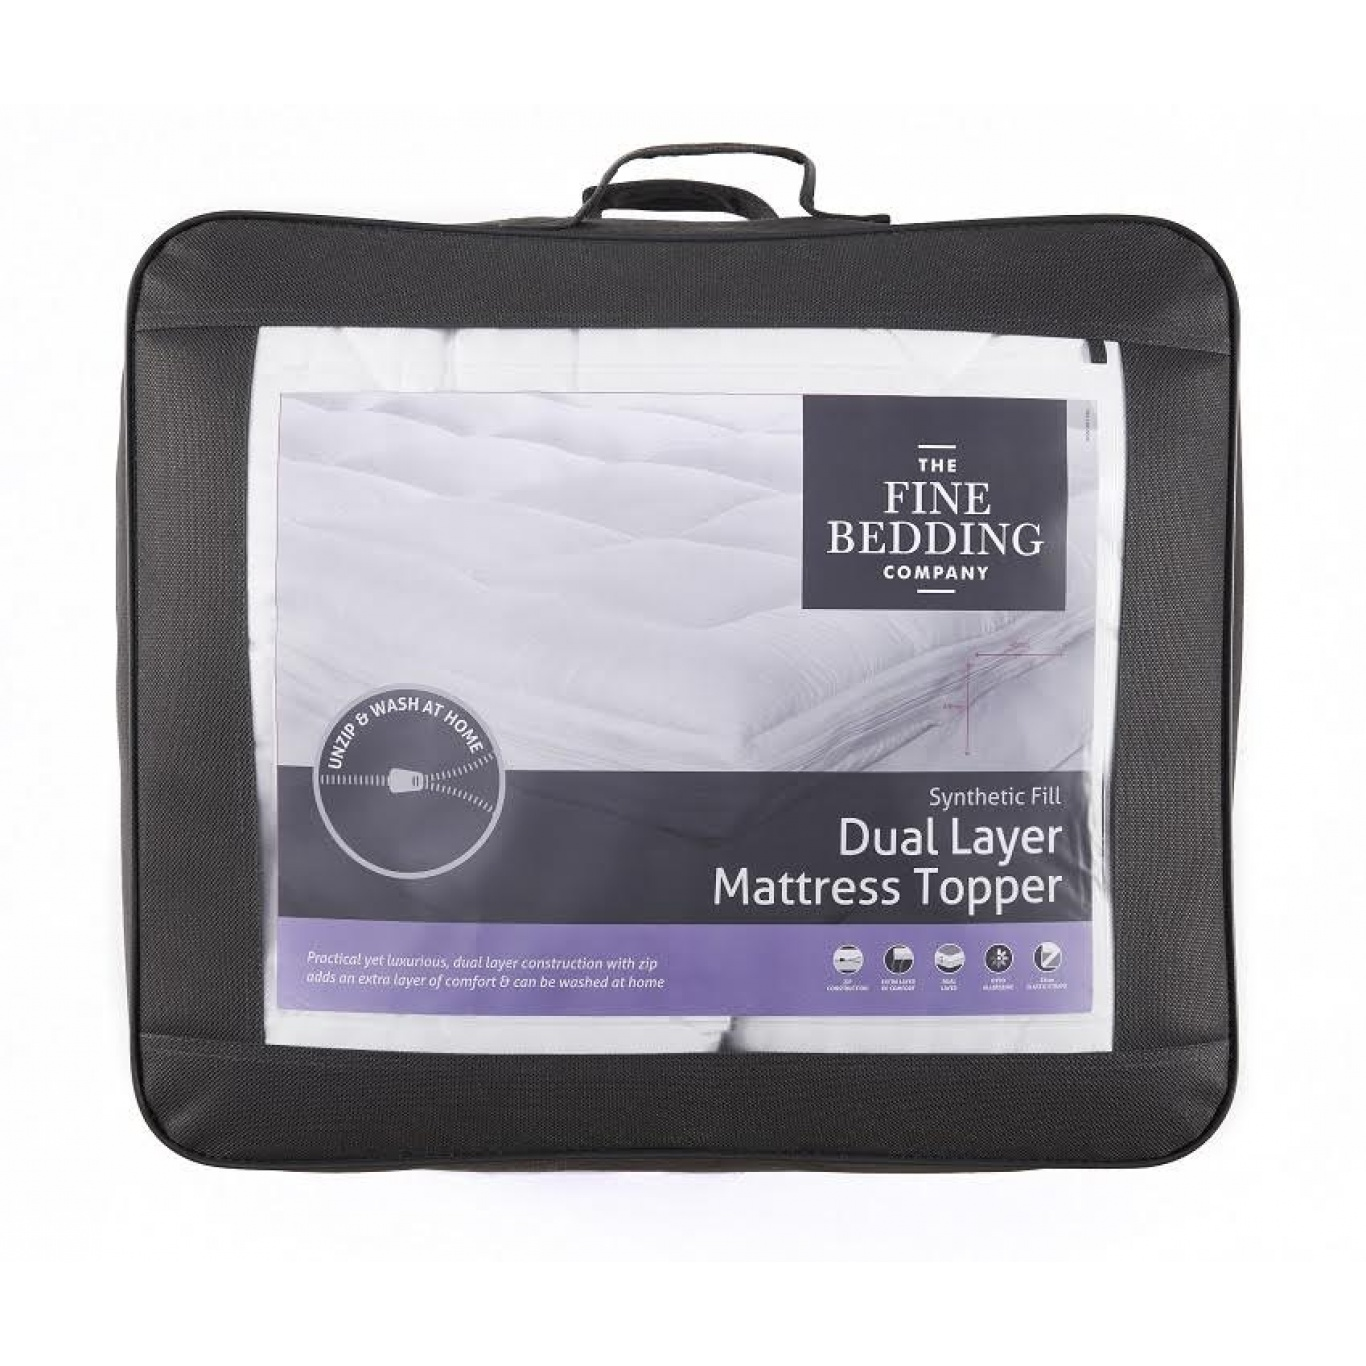 Image of Dual Layer Double Mattress Topper